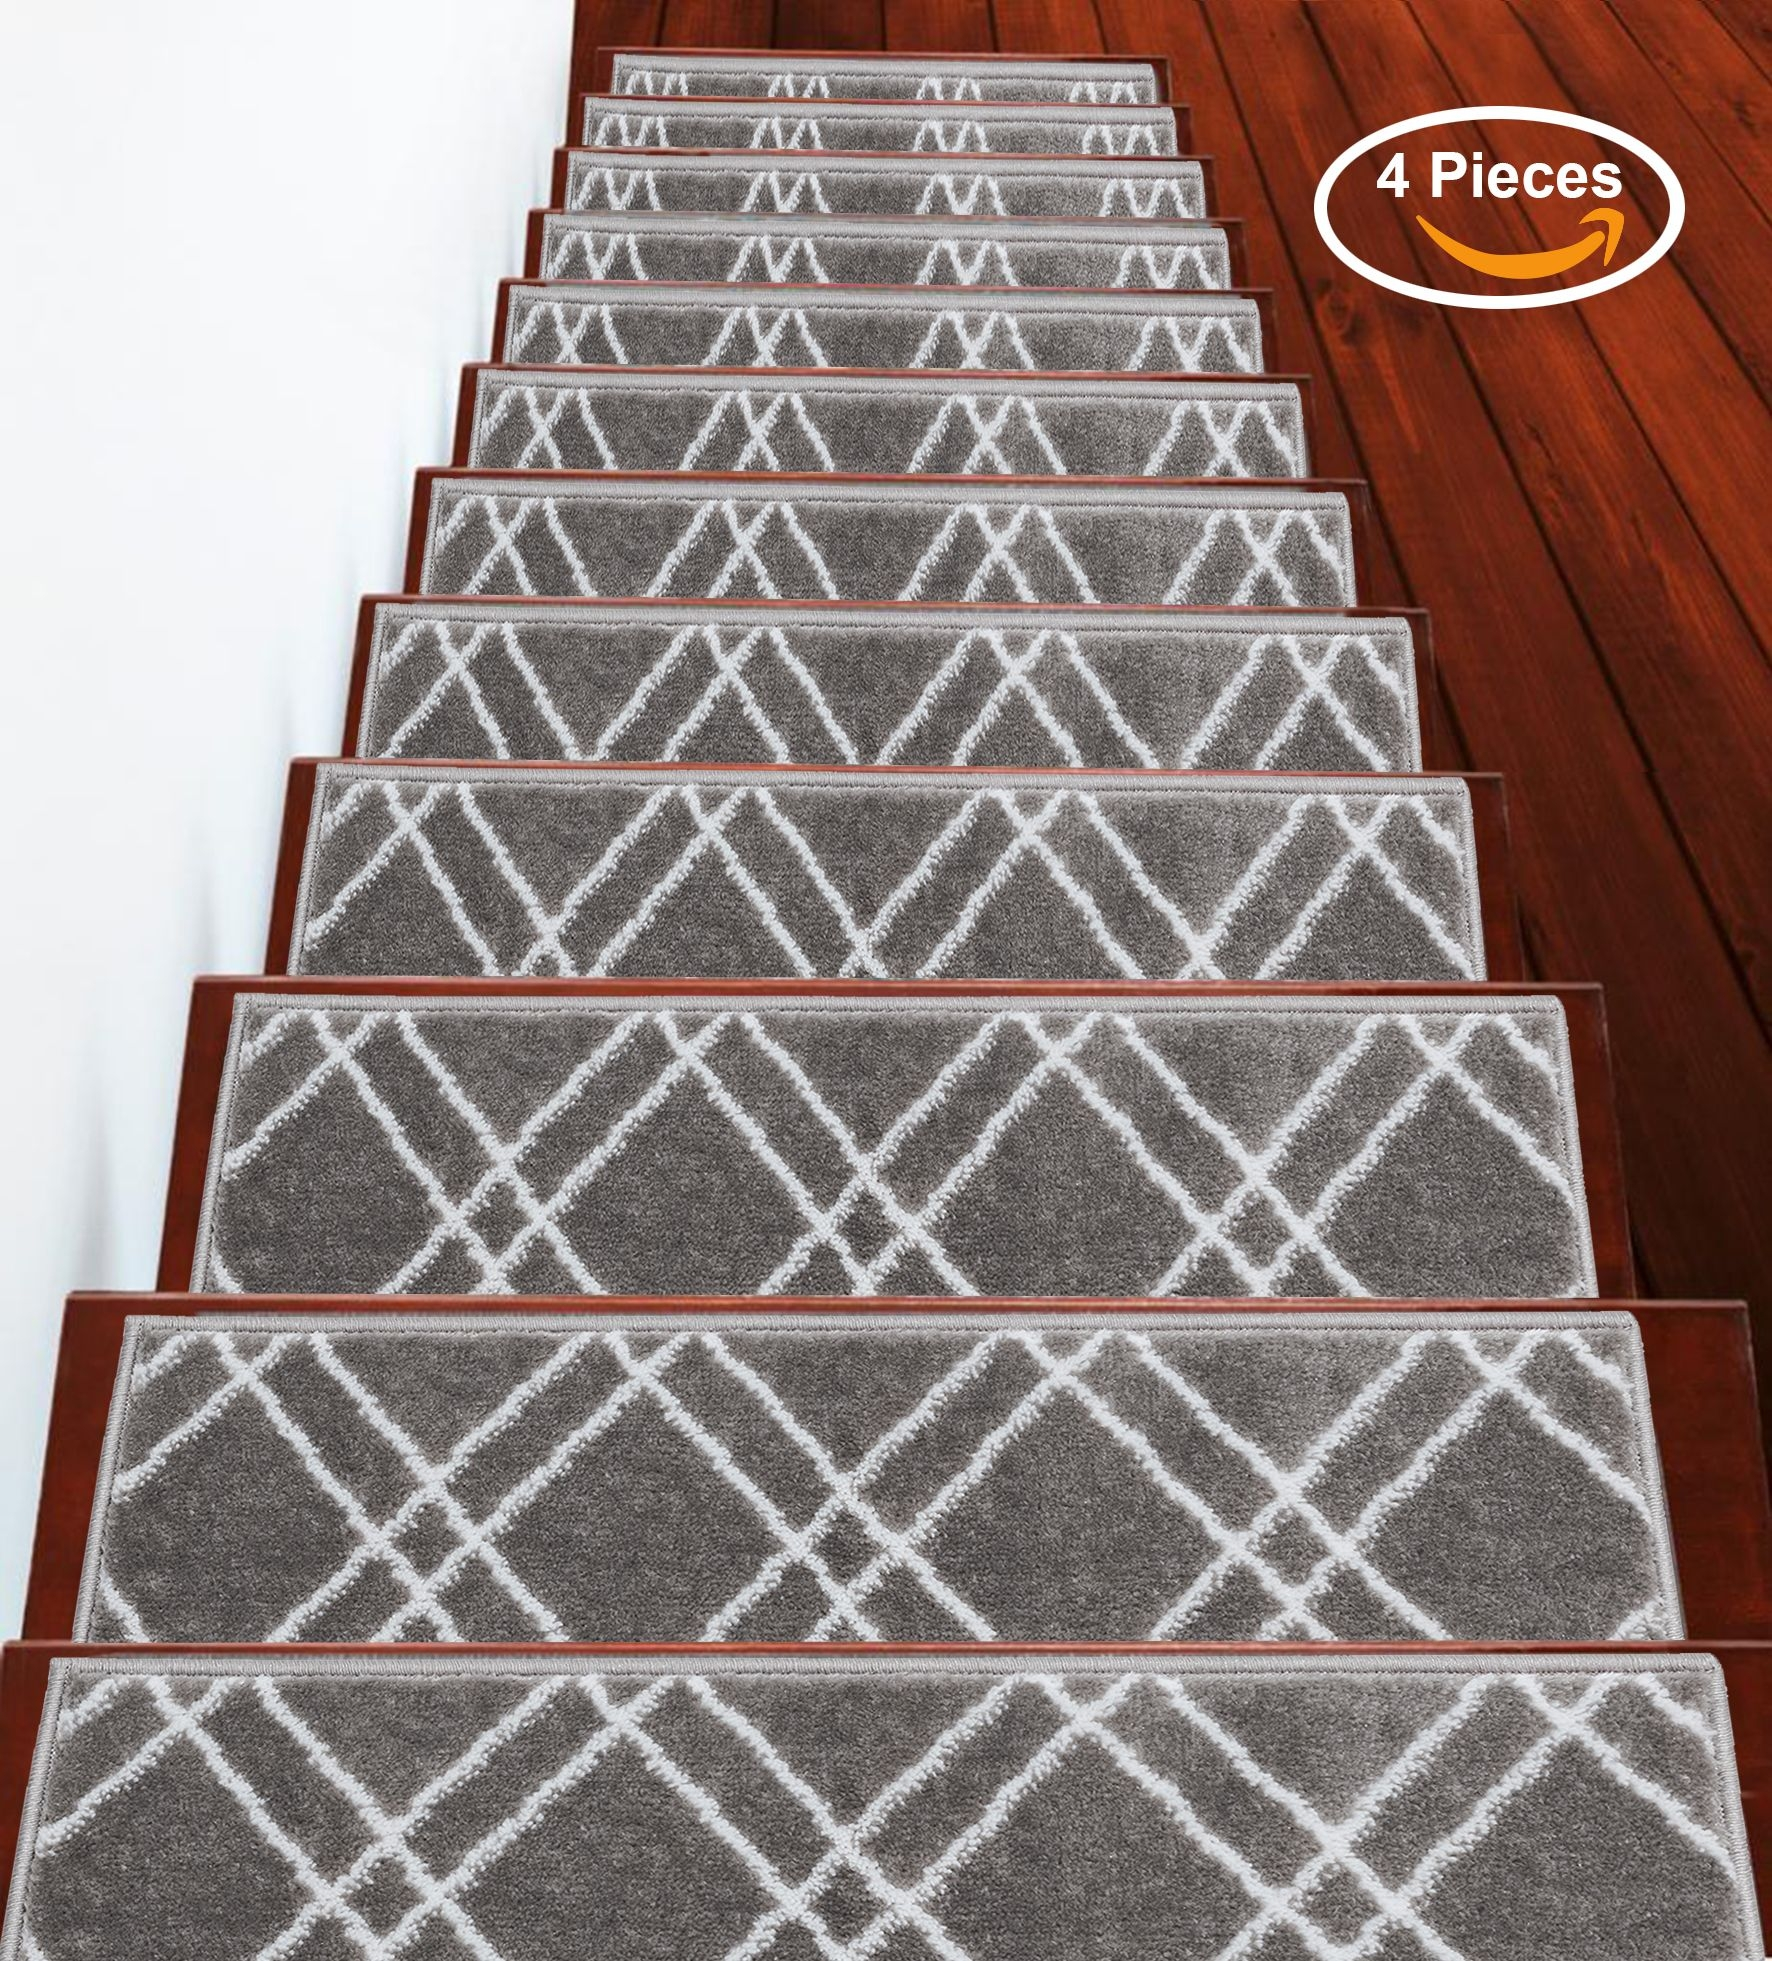 Sussexhome Stair Treads Stairs Slide Carpet Stair Tread Non   Washable Non Slip Stair Treads   Carpet Stair   Skid Resistant   Rubber Backing   Nova Morrocan Washable   Removable Washable